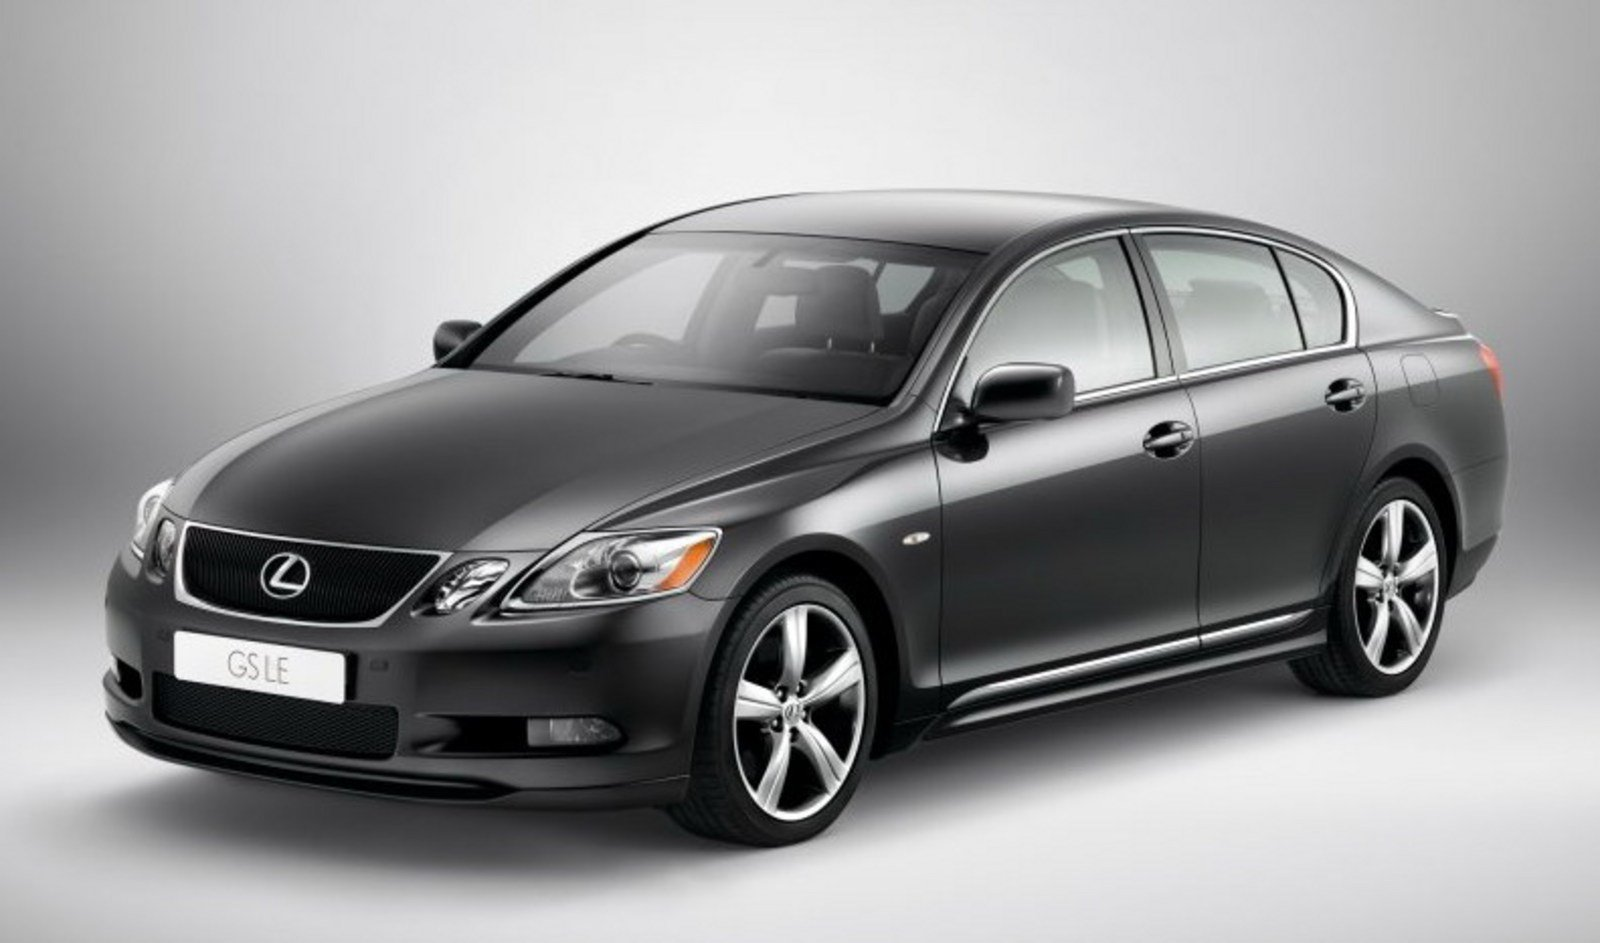 2007 lexus gs 300 limited edition review top speed. Black Bedroom Furniture Sets. Home Design Ideas